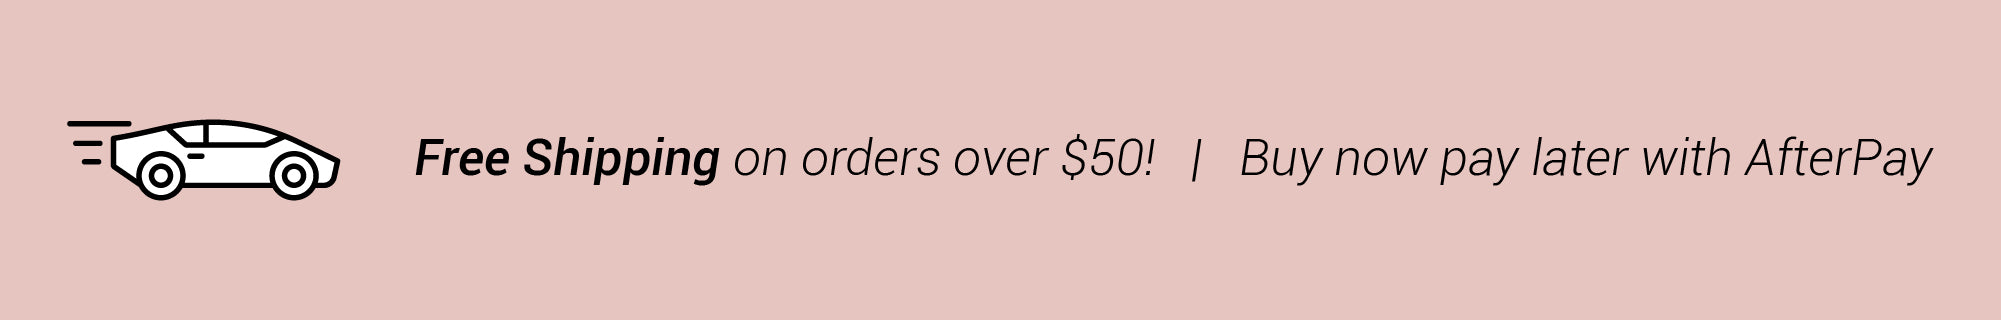 Free shipping over $50. After Pay available